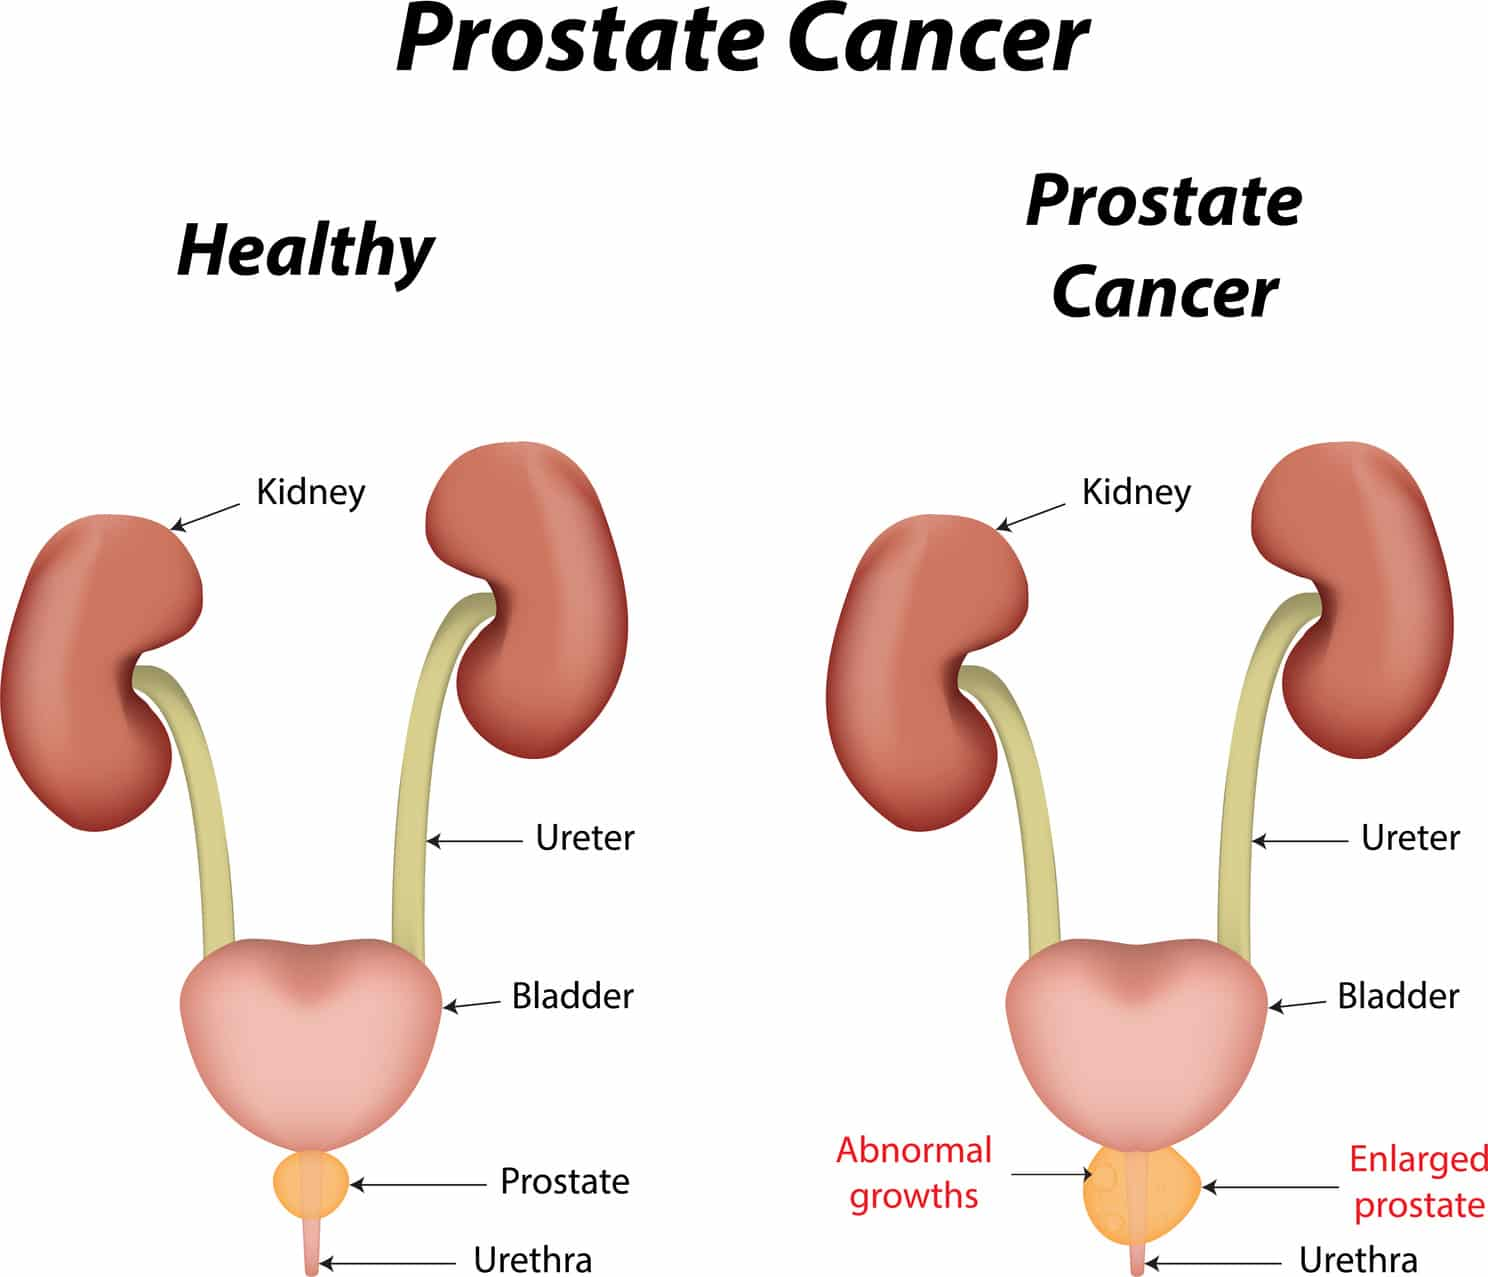 Multivitamin use may reduce prostate Ca recurrence